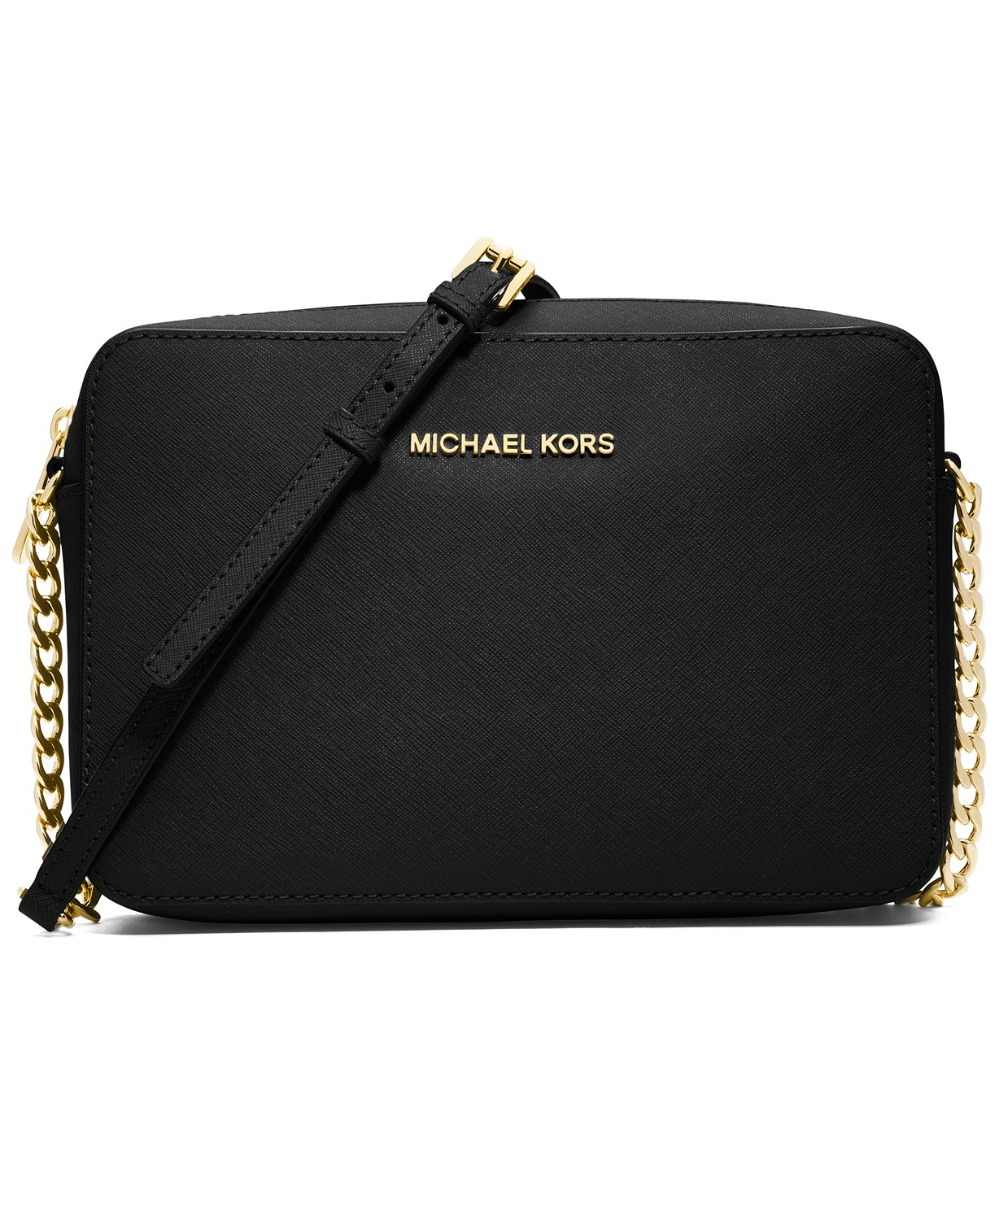 ... Michael Kors Jet Set East West Crossgrain Leather Crossbody  (Black/Gold) Luxury Handbags ...